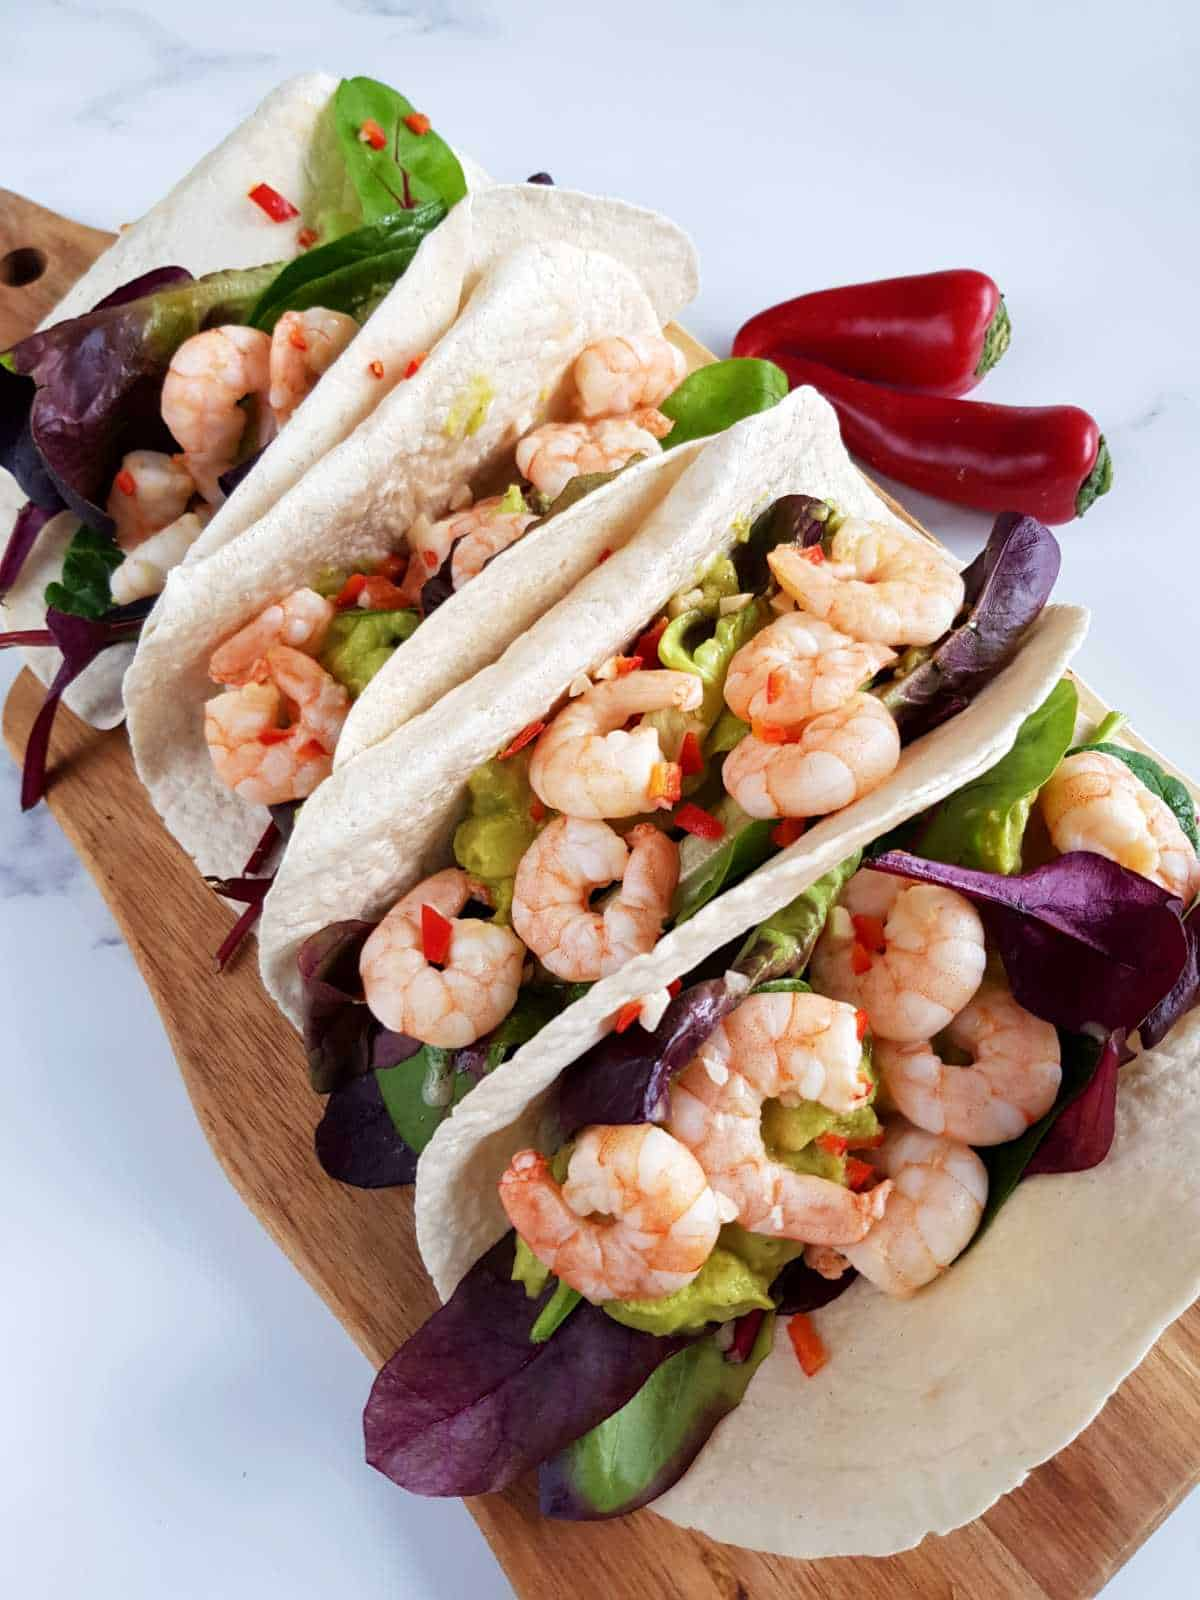 Chili and lime shrimp tacos on a wooden board.